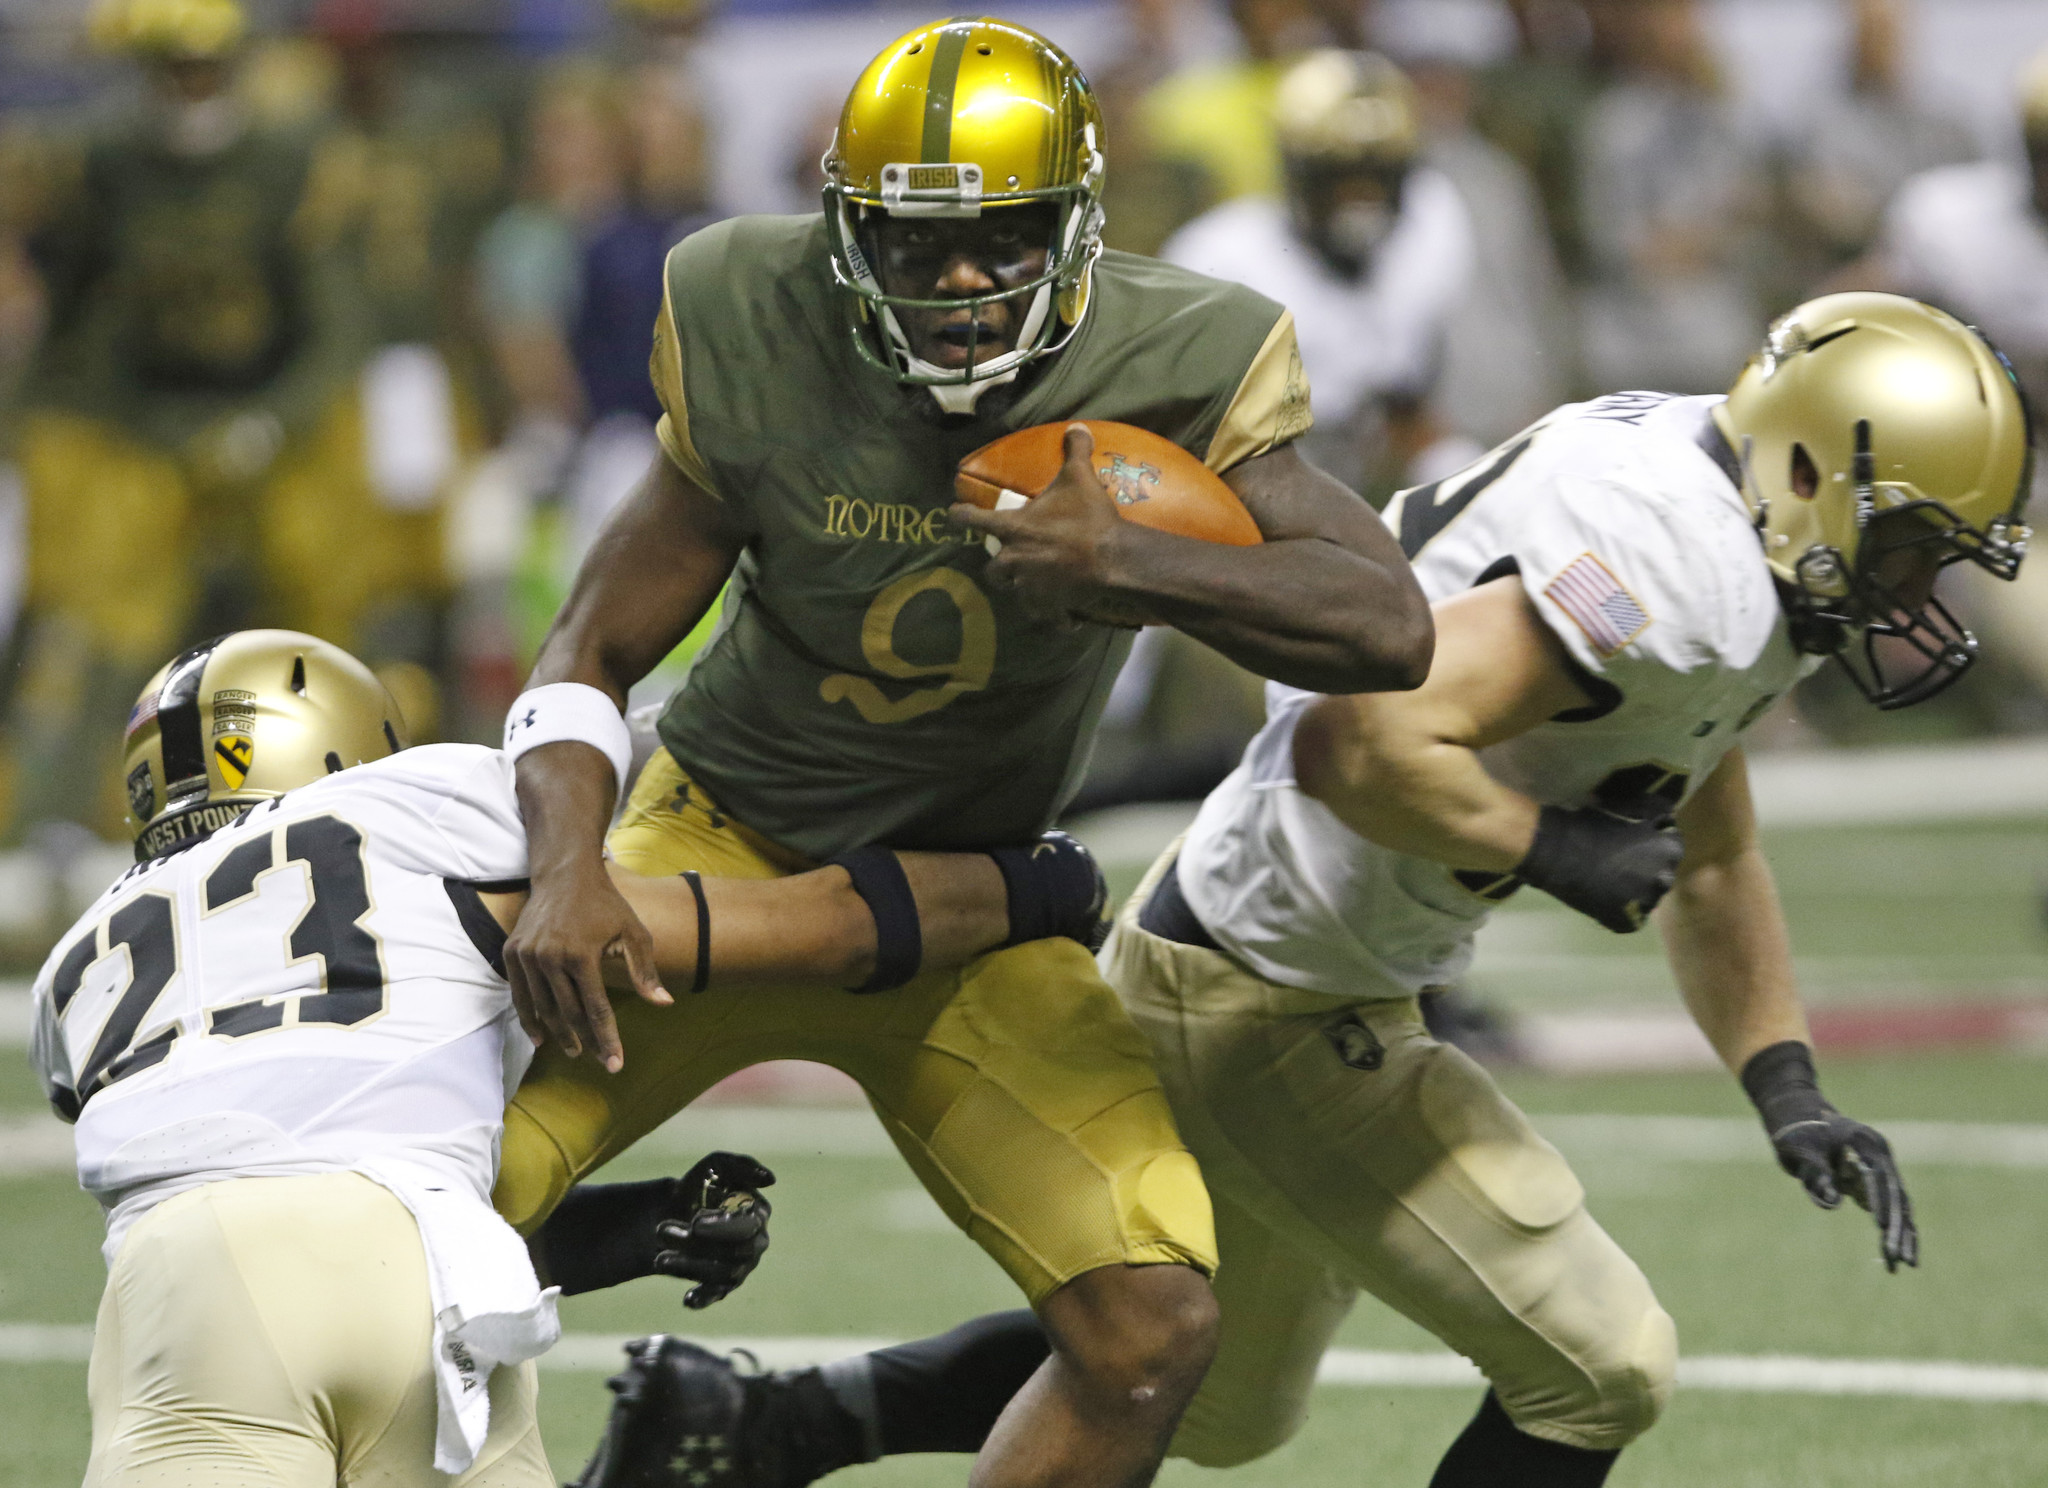 QB Malik Zaire released from Notre Dame, with conditions